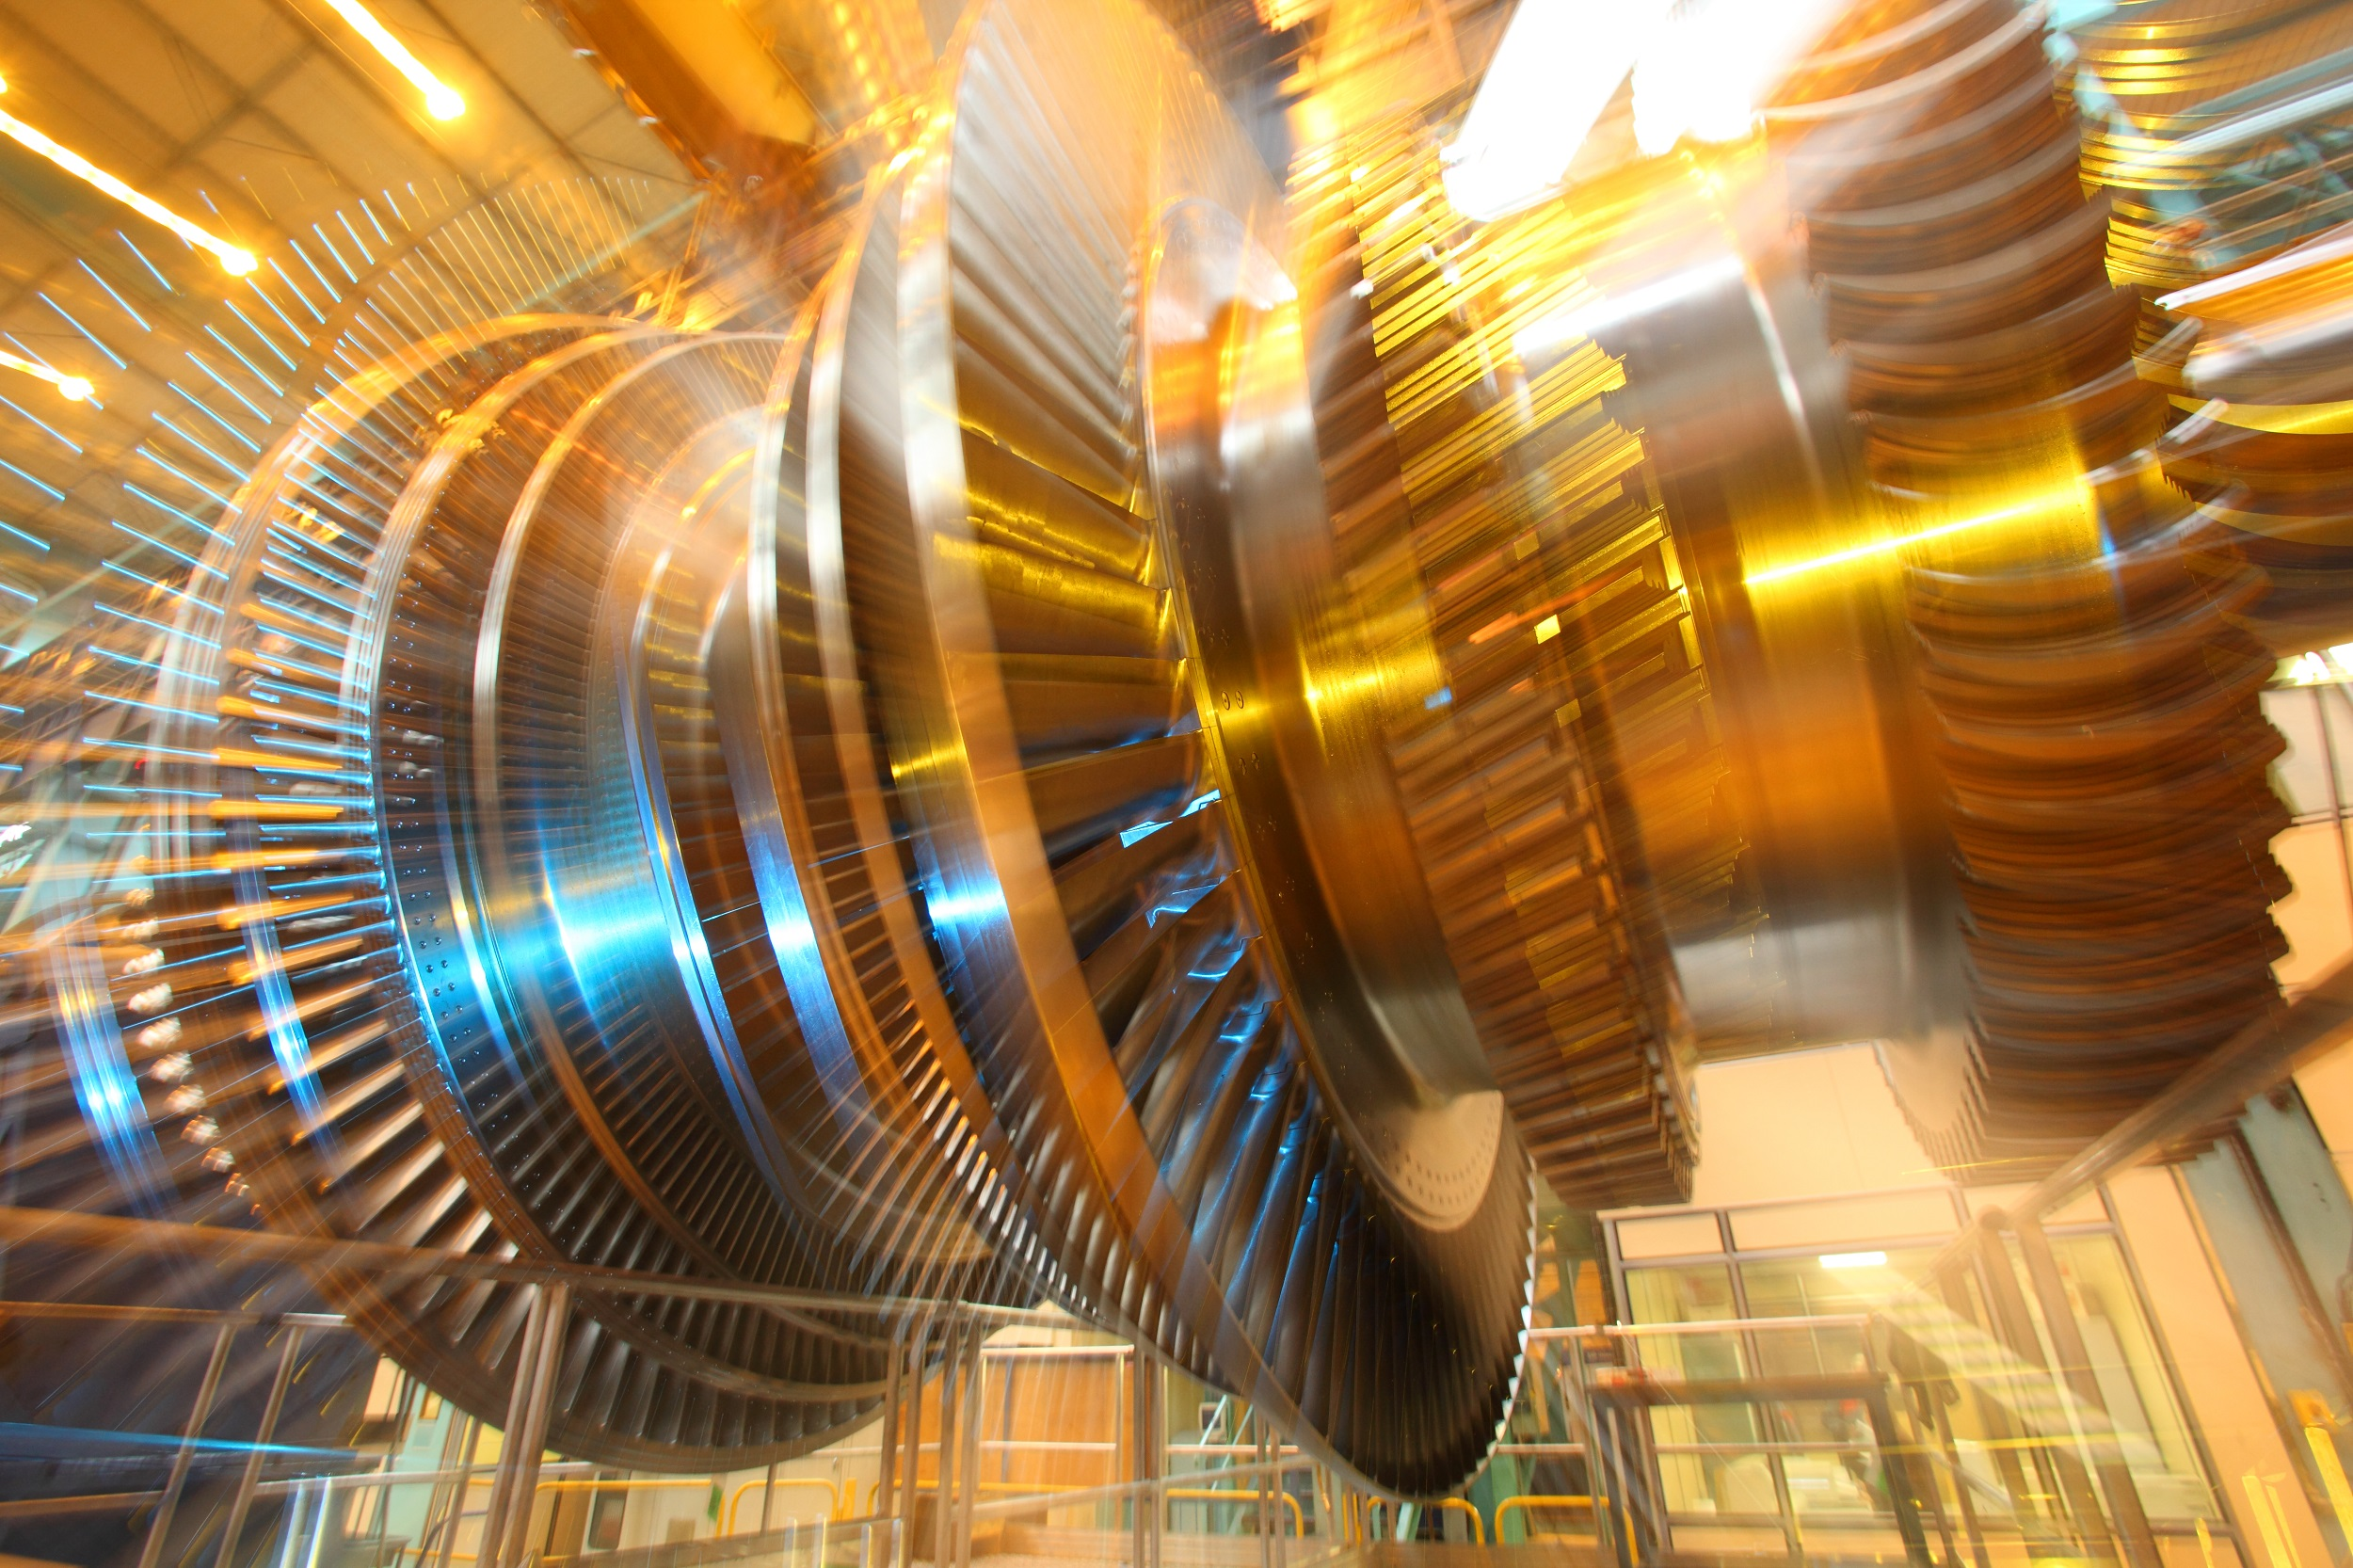 GE Power to Supply 4 Nuclear Turbine Islands for El Dabaa